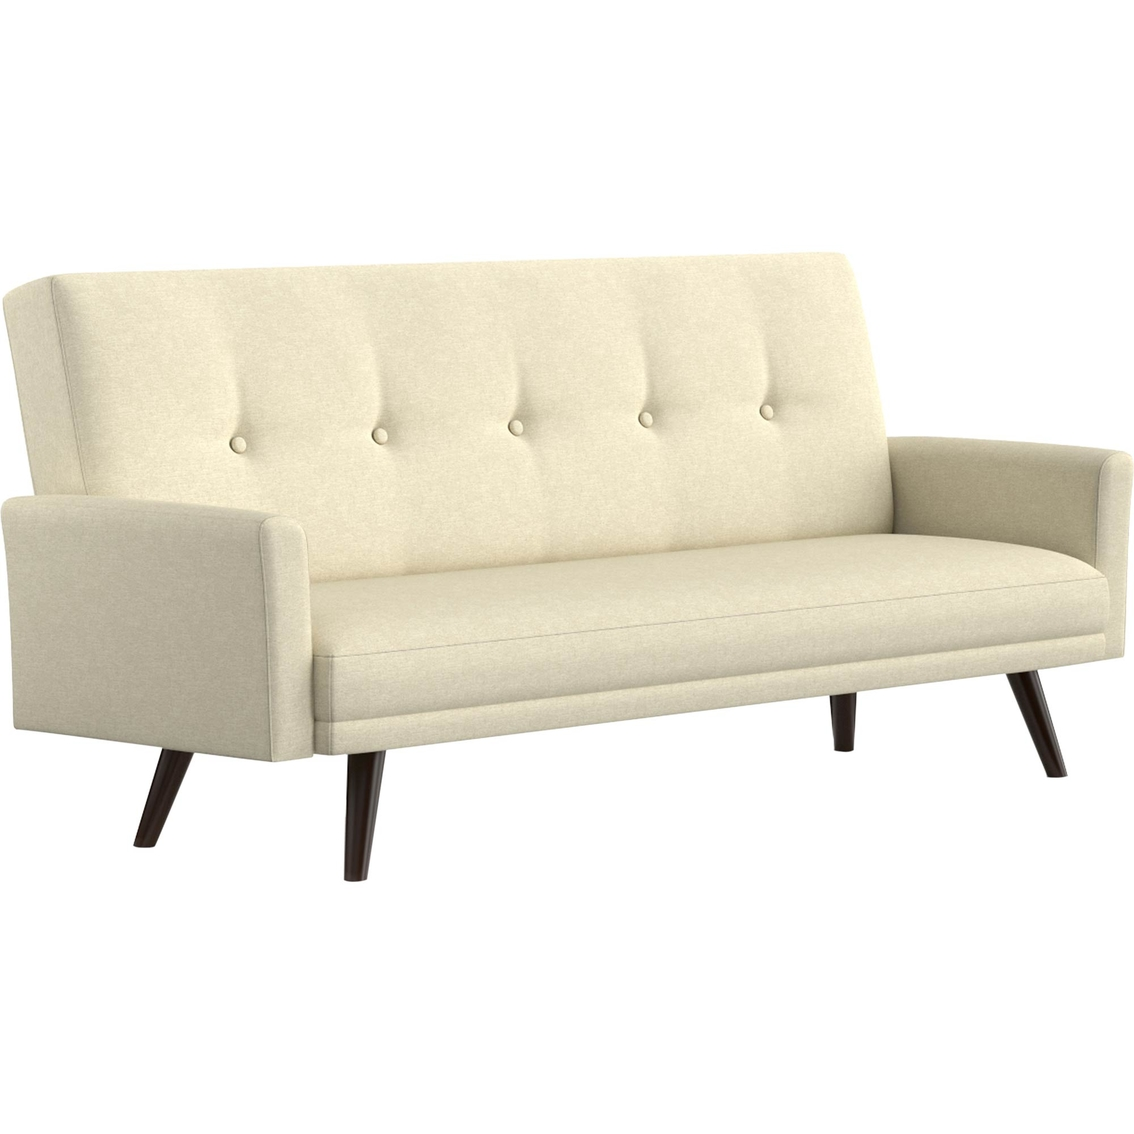 sofa beds on gumtree adelaide 3 seat bed cover couch melbourne awesome home